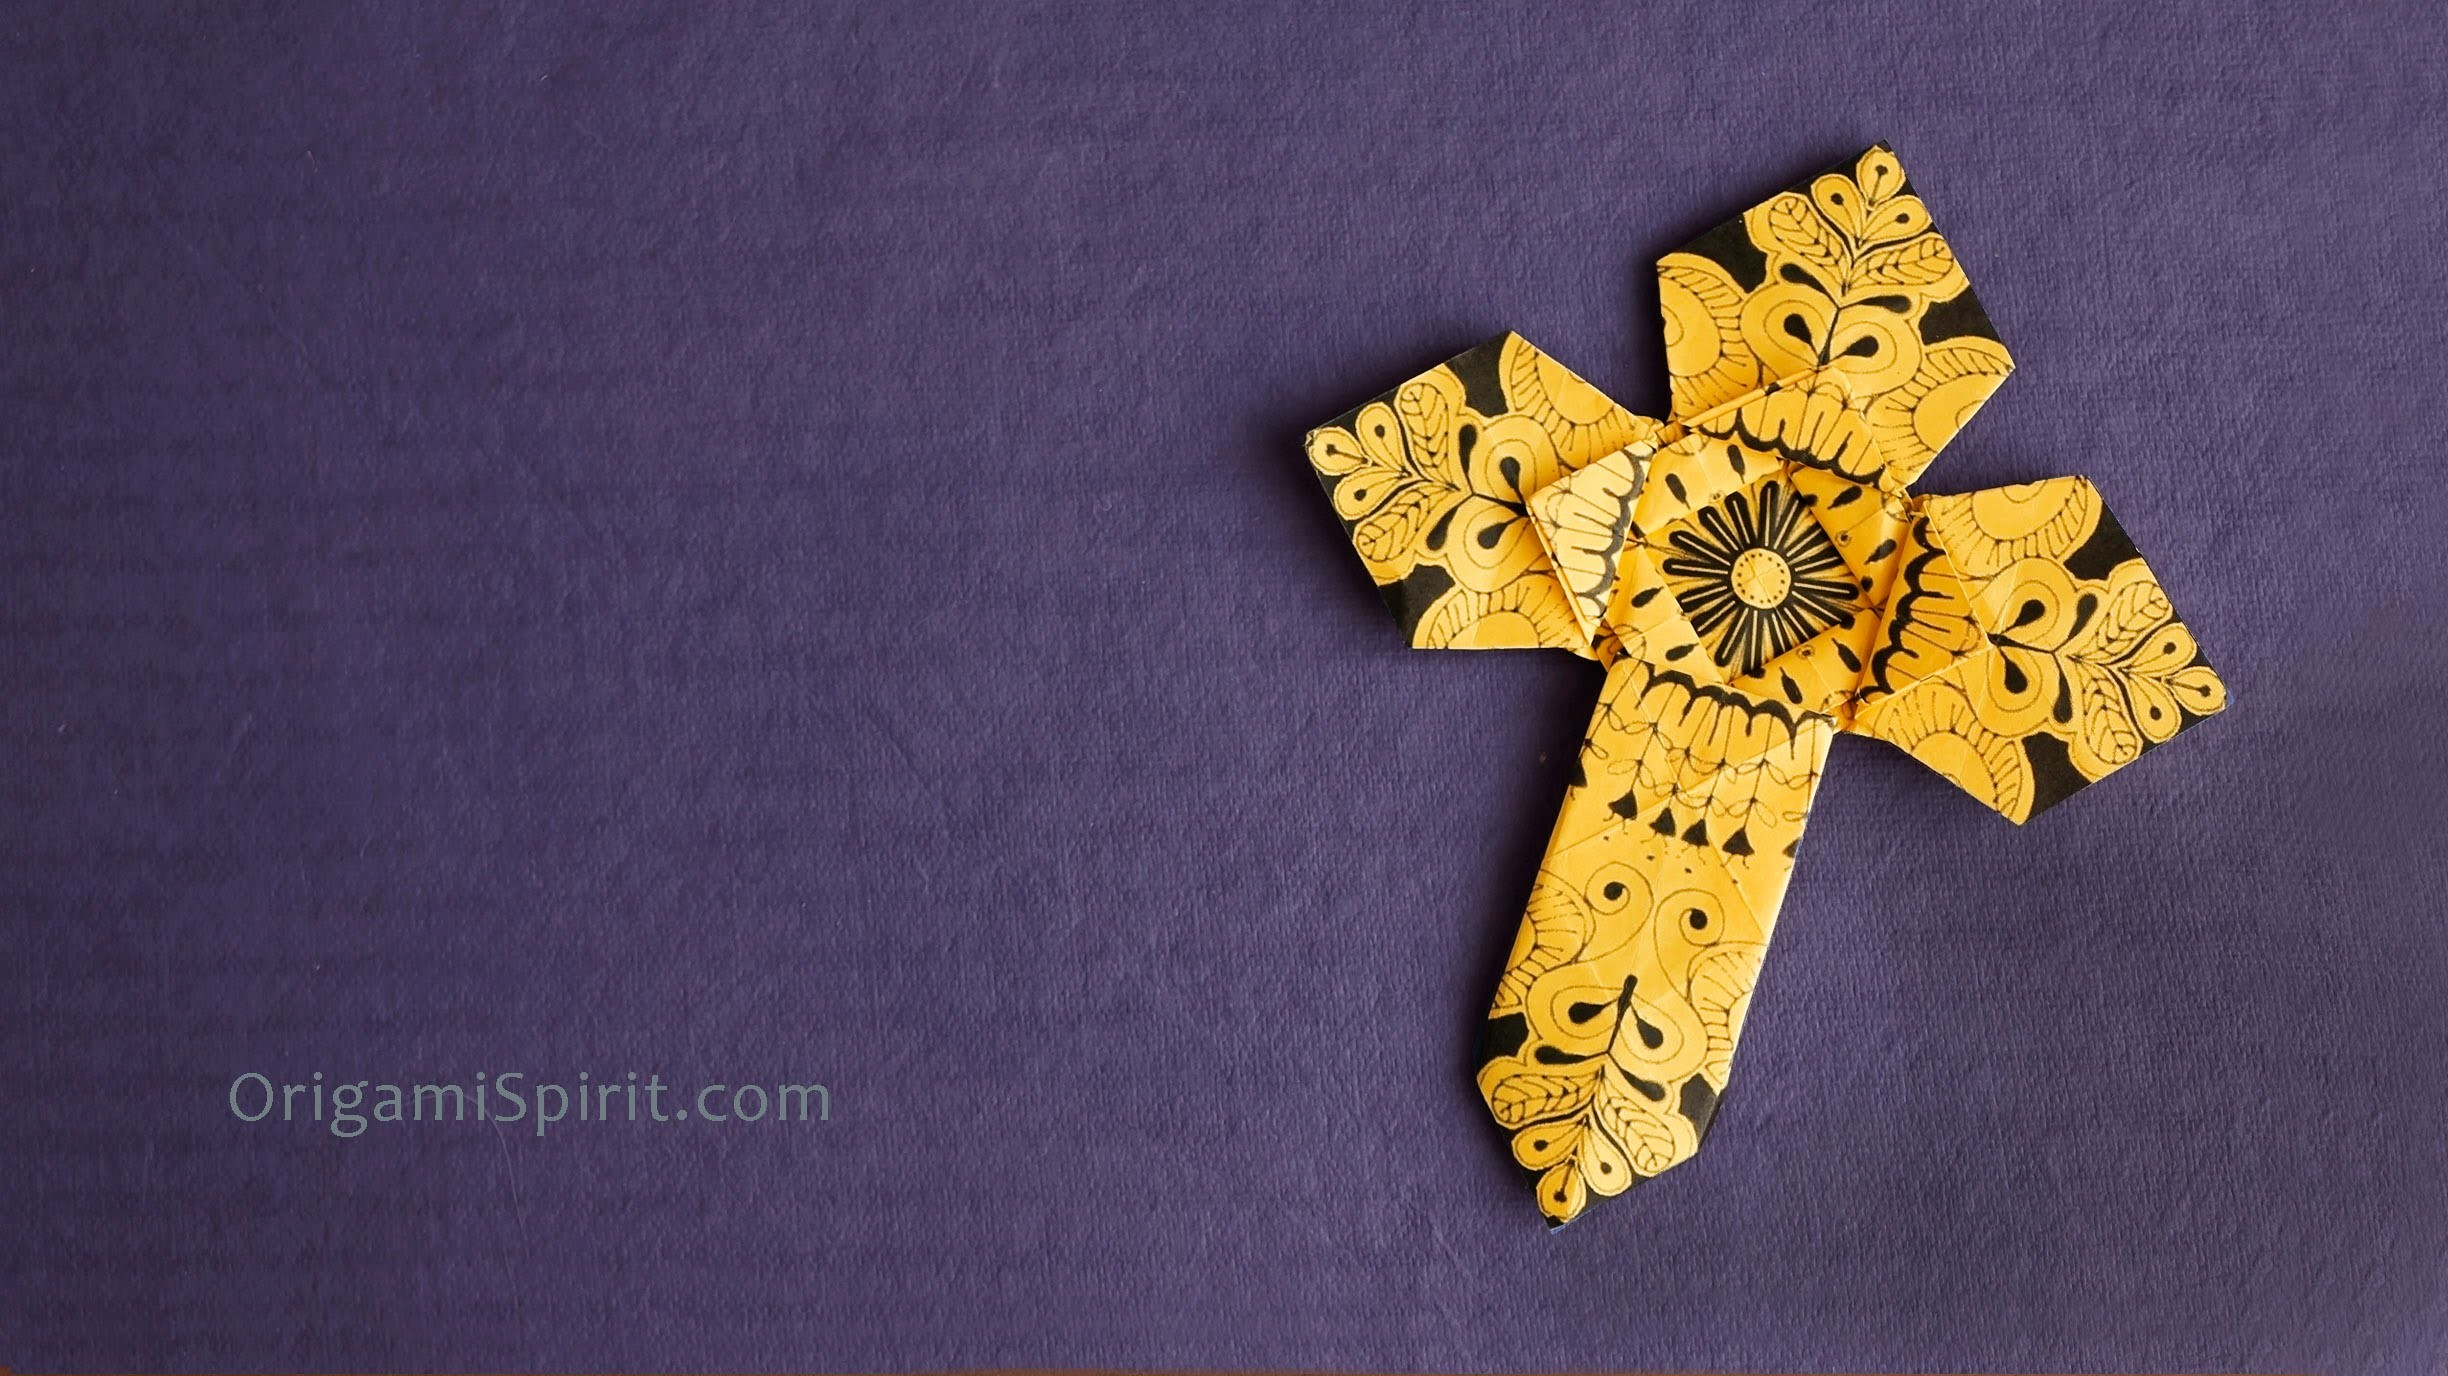 Origami Cross - Version 2 : : Cruz de papel 2, My Crafts and DIY Projects